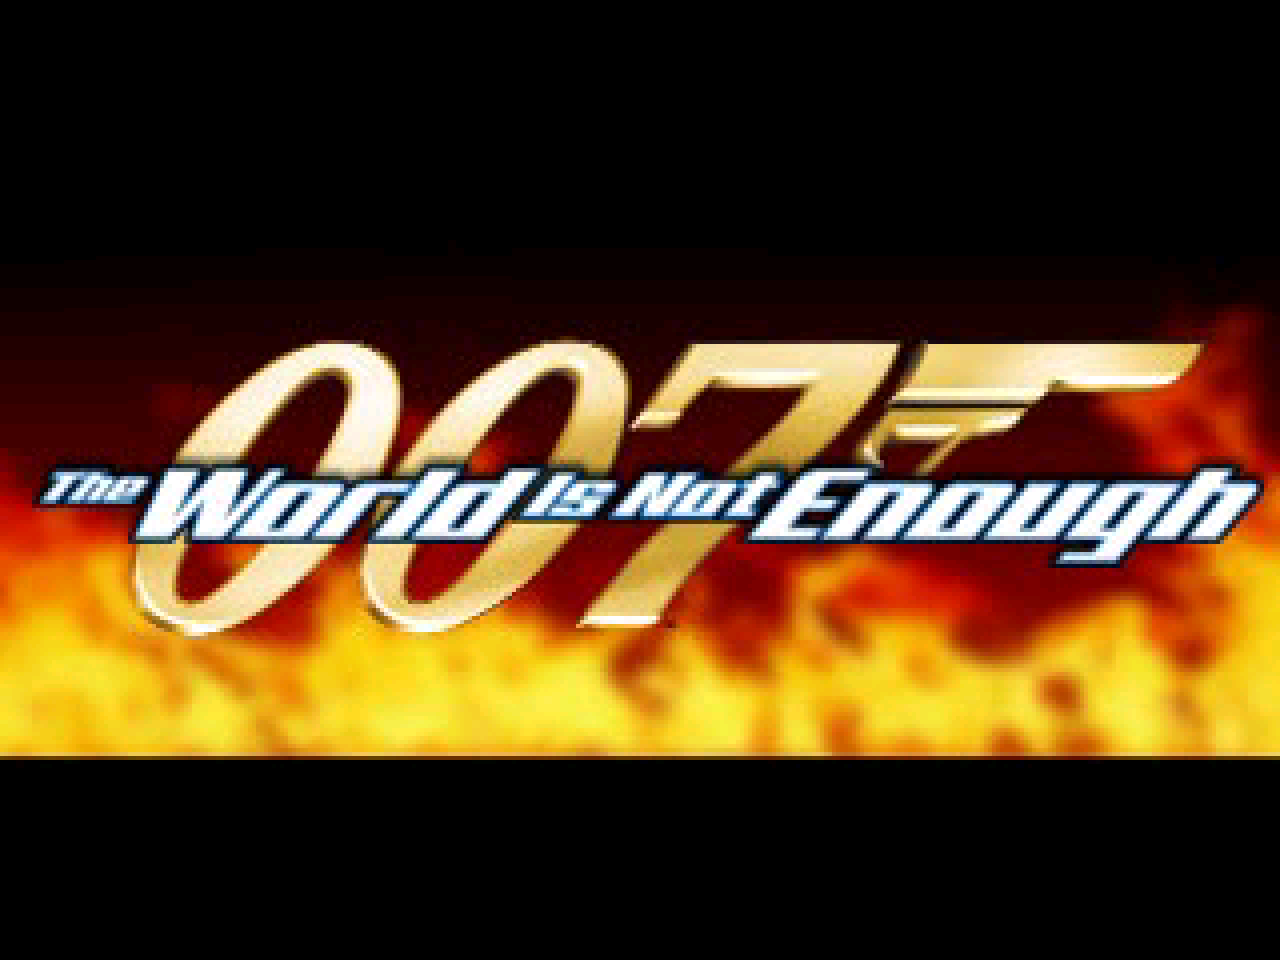 https://s3.eu-west-3.amazonaws.com/games.anthony-dessalles.com/007 The World Is Not Enough PS1 2020 - Screenshots/007 The World Is Not Enough-201121-163650.png